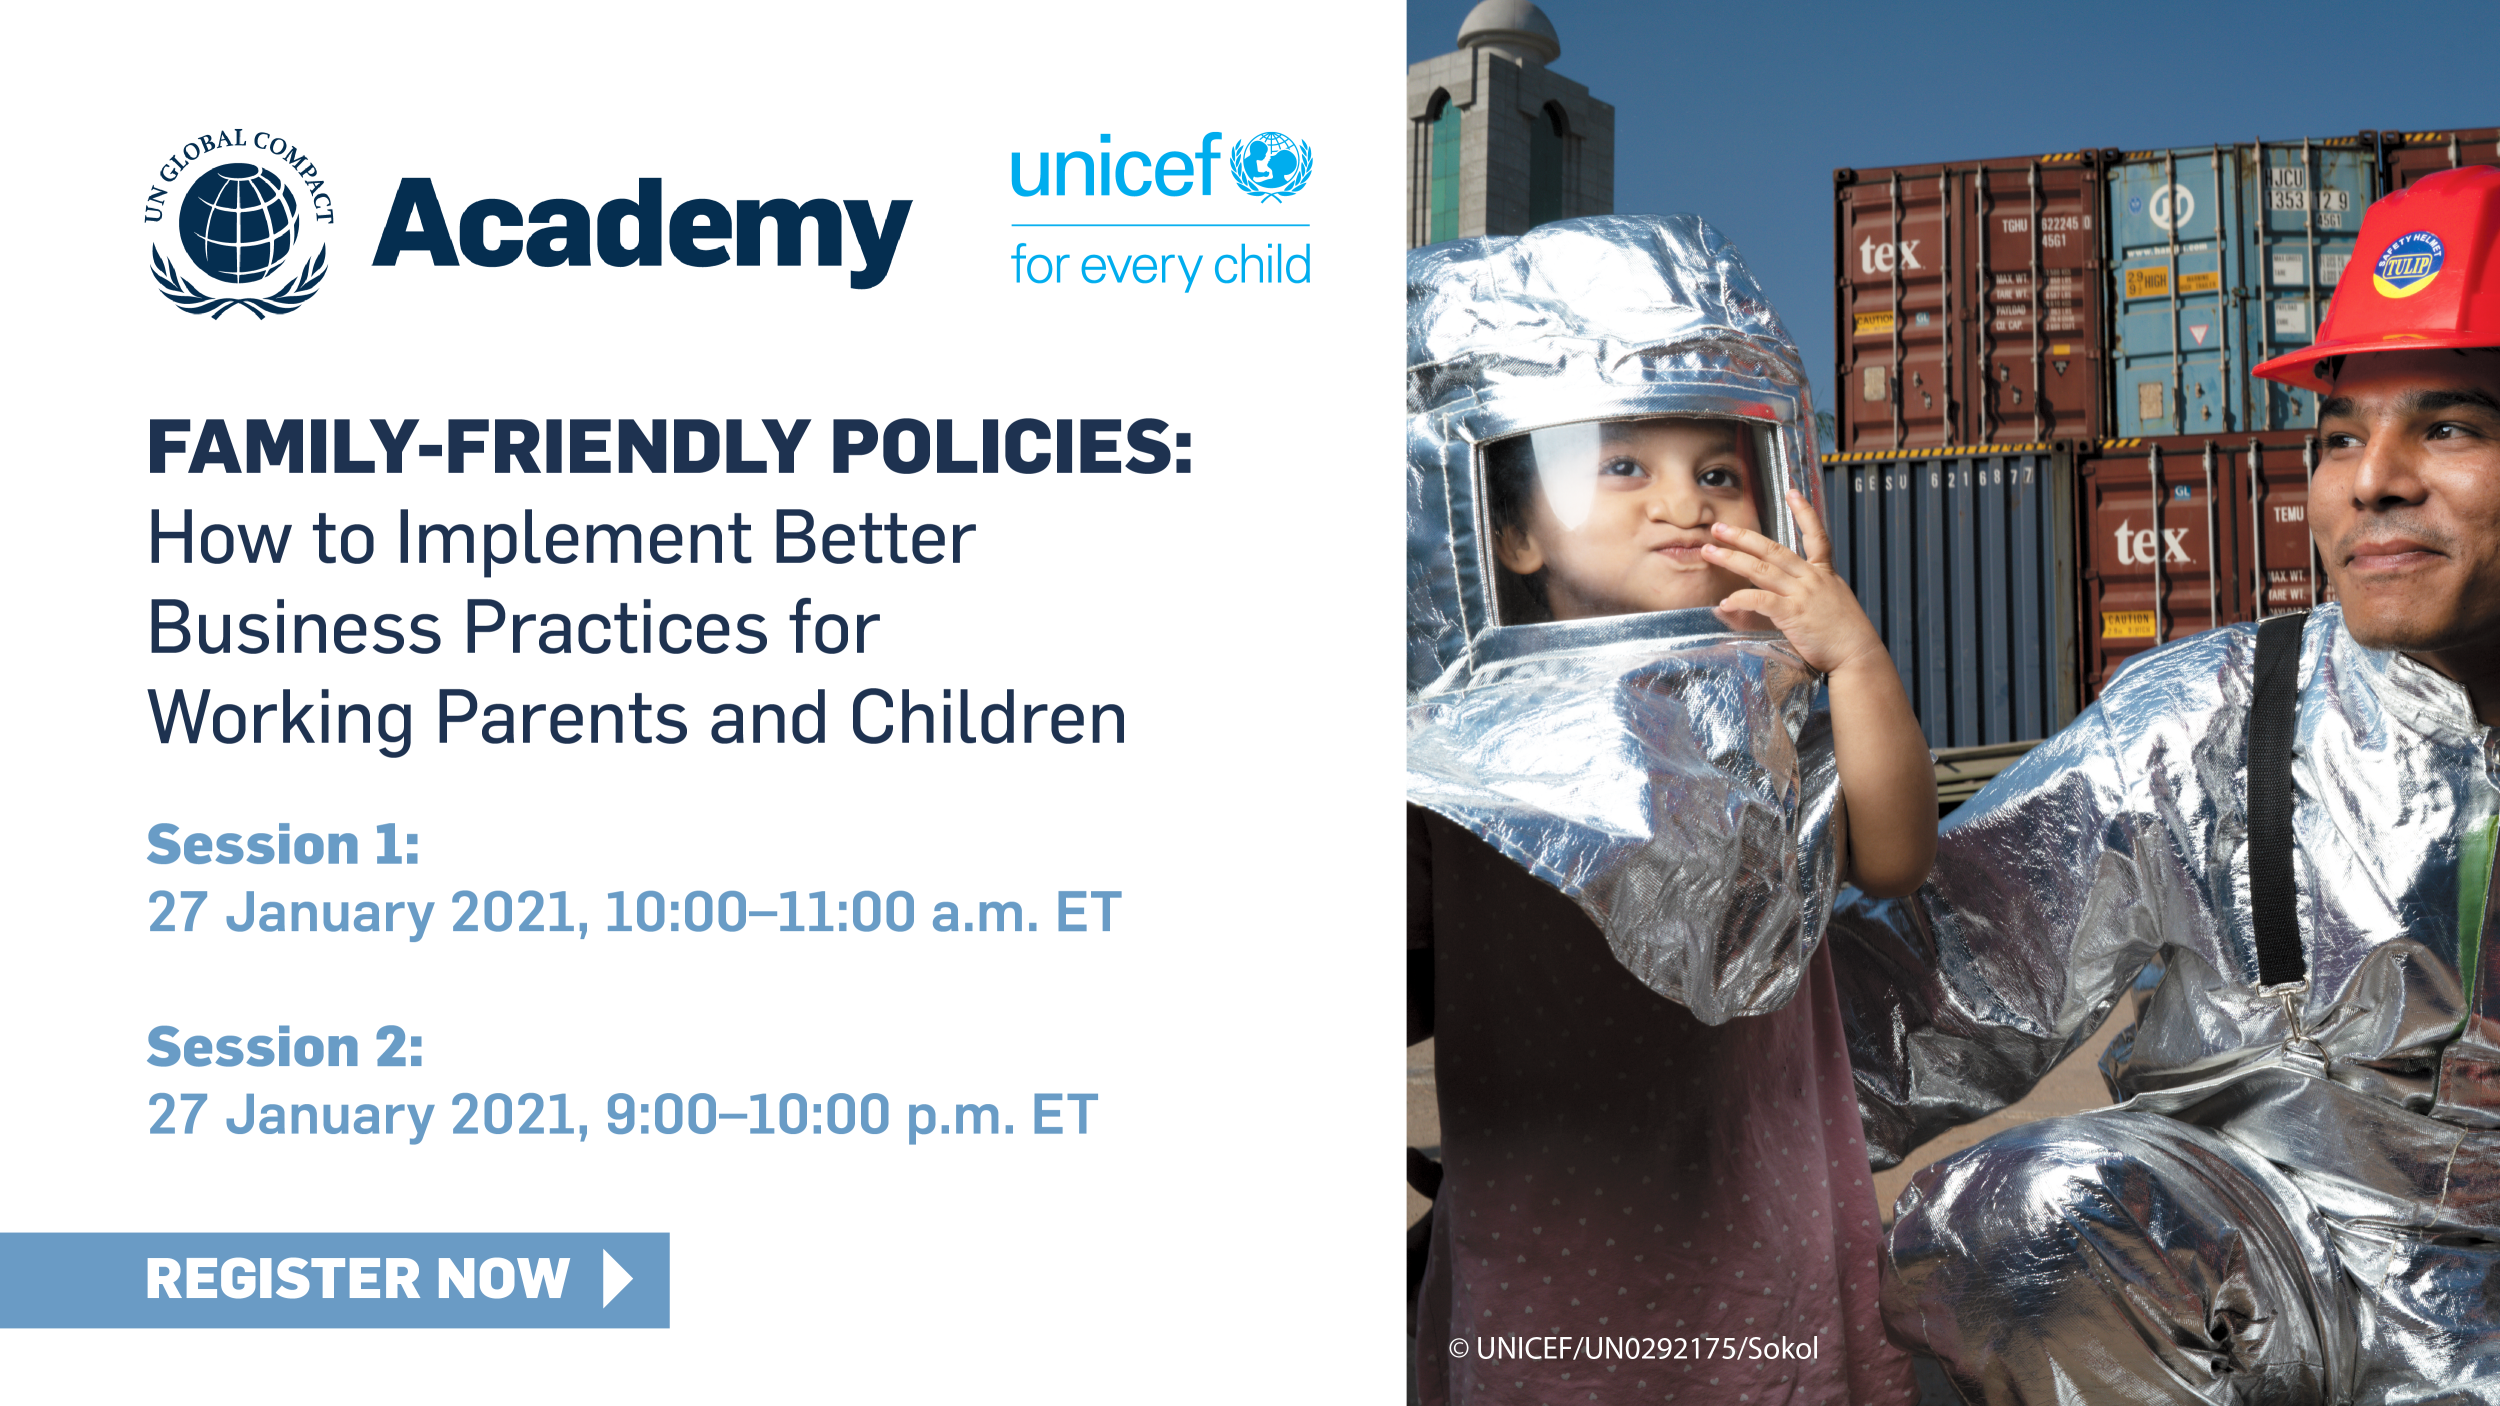 Family-Friendly Policies: How to Implement Better Business Practices for Working Parents and Children